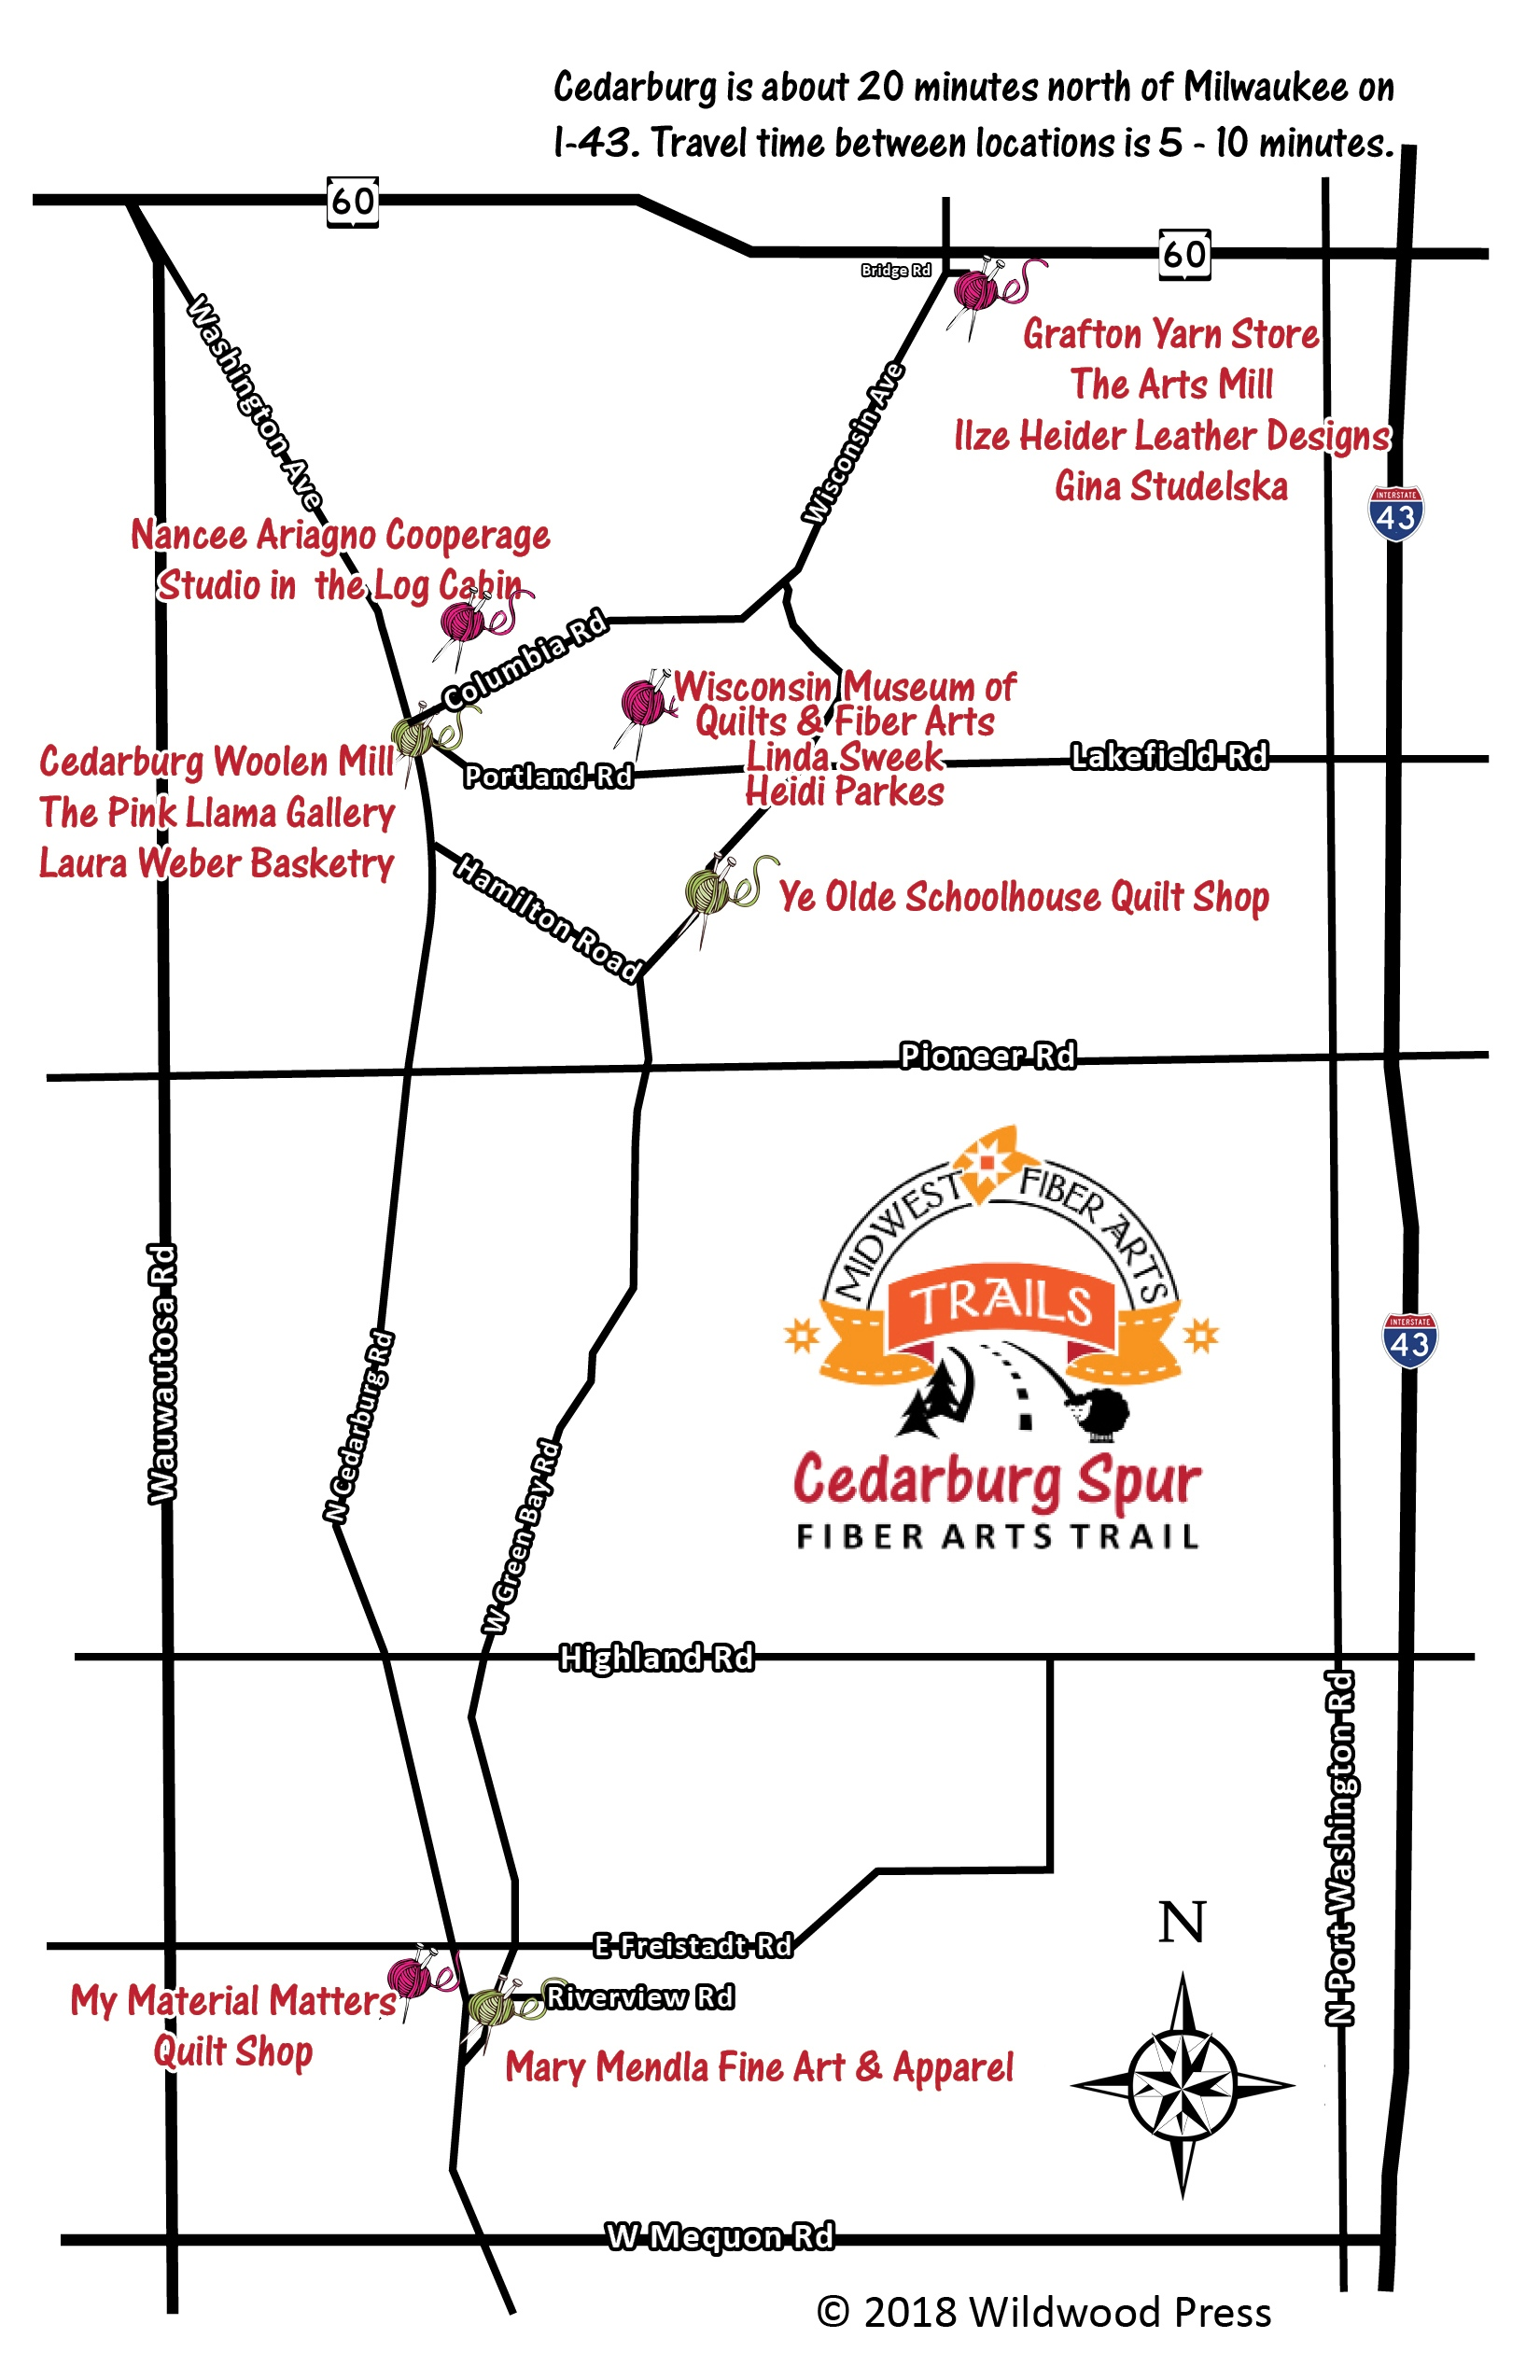 Cedarburg Wisconsin Map.Cedarburg Spur Fiber Arts Trail 5th Anniversary Tour Midwest